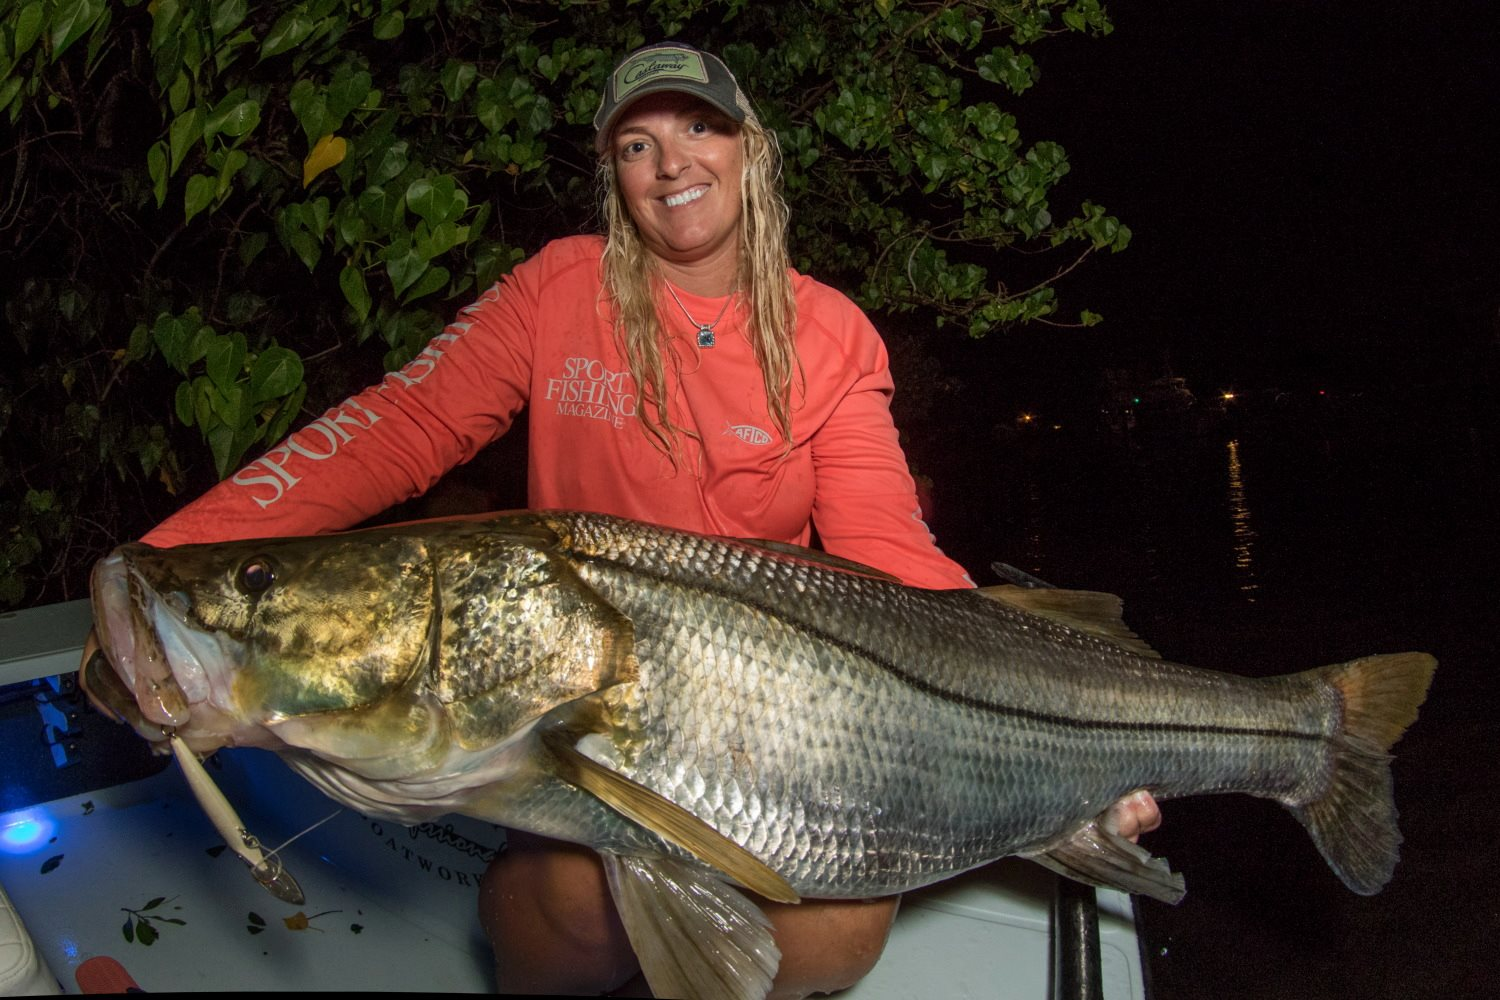 Indian River Snook caught by Gina.